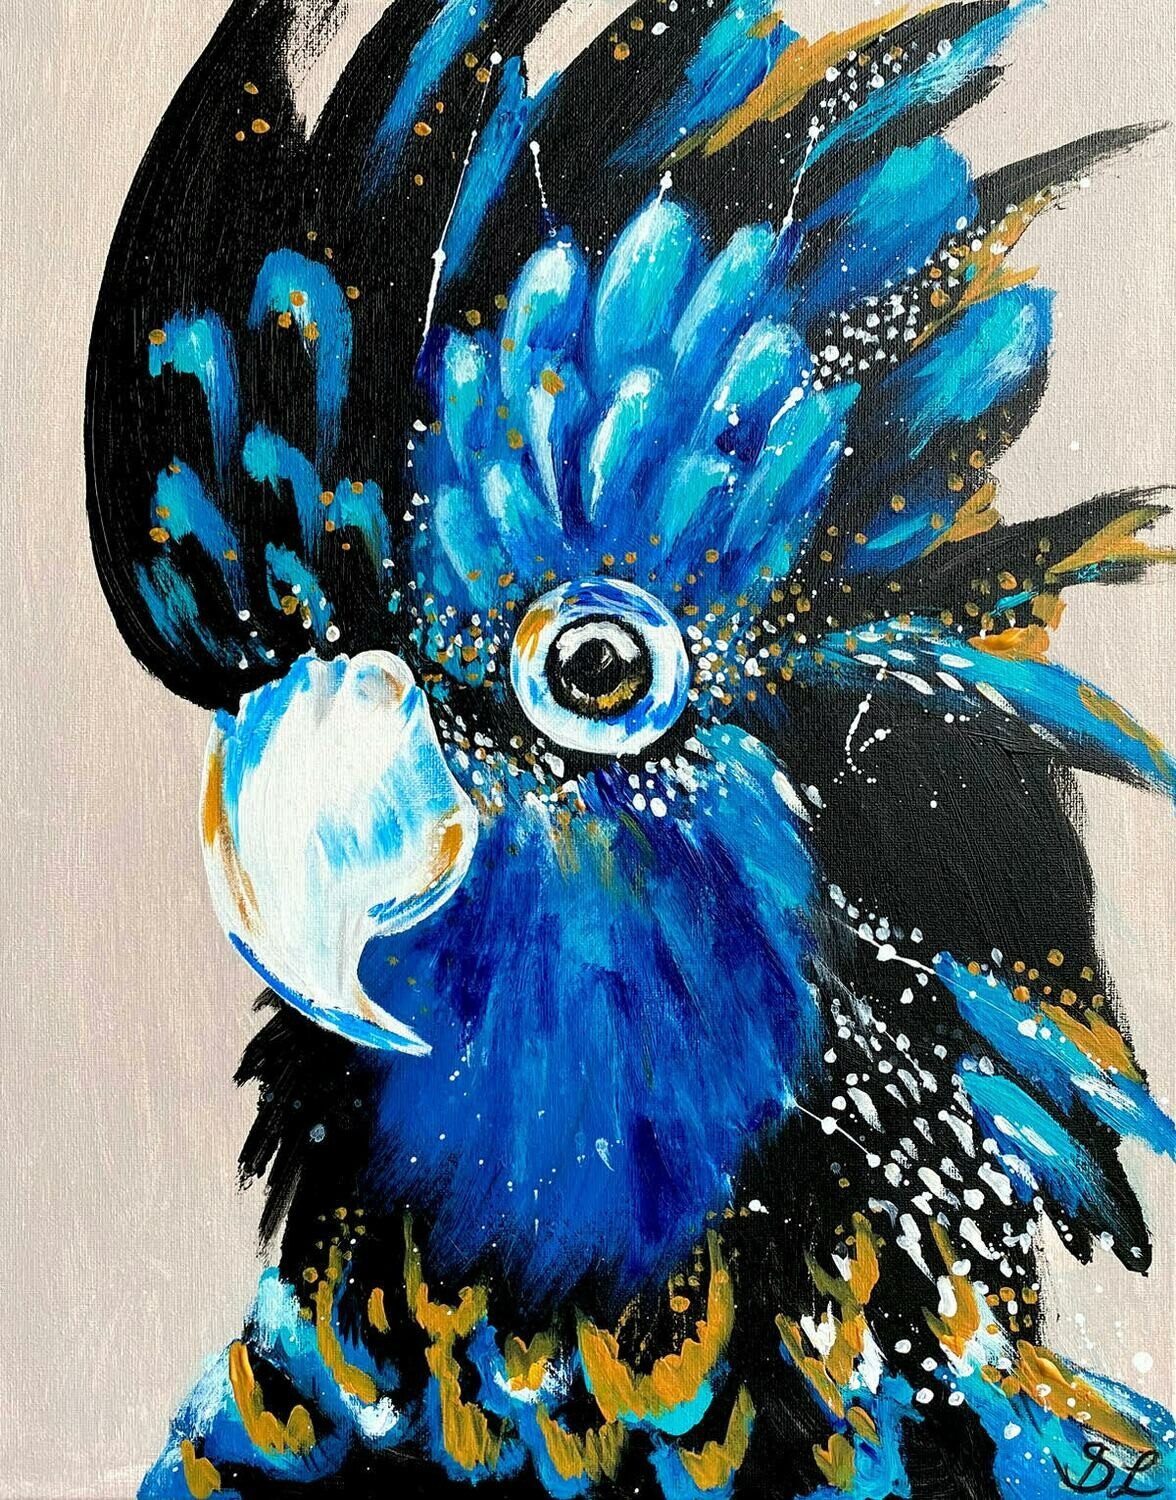 Paint n Sip at The Seed! Sunday June 27th 2-4pm